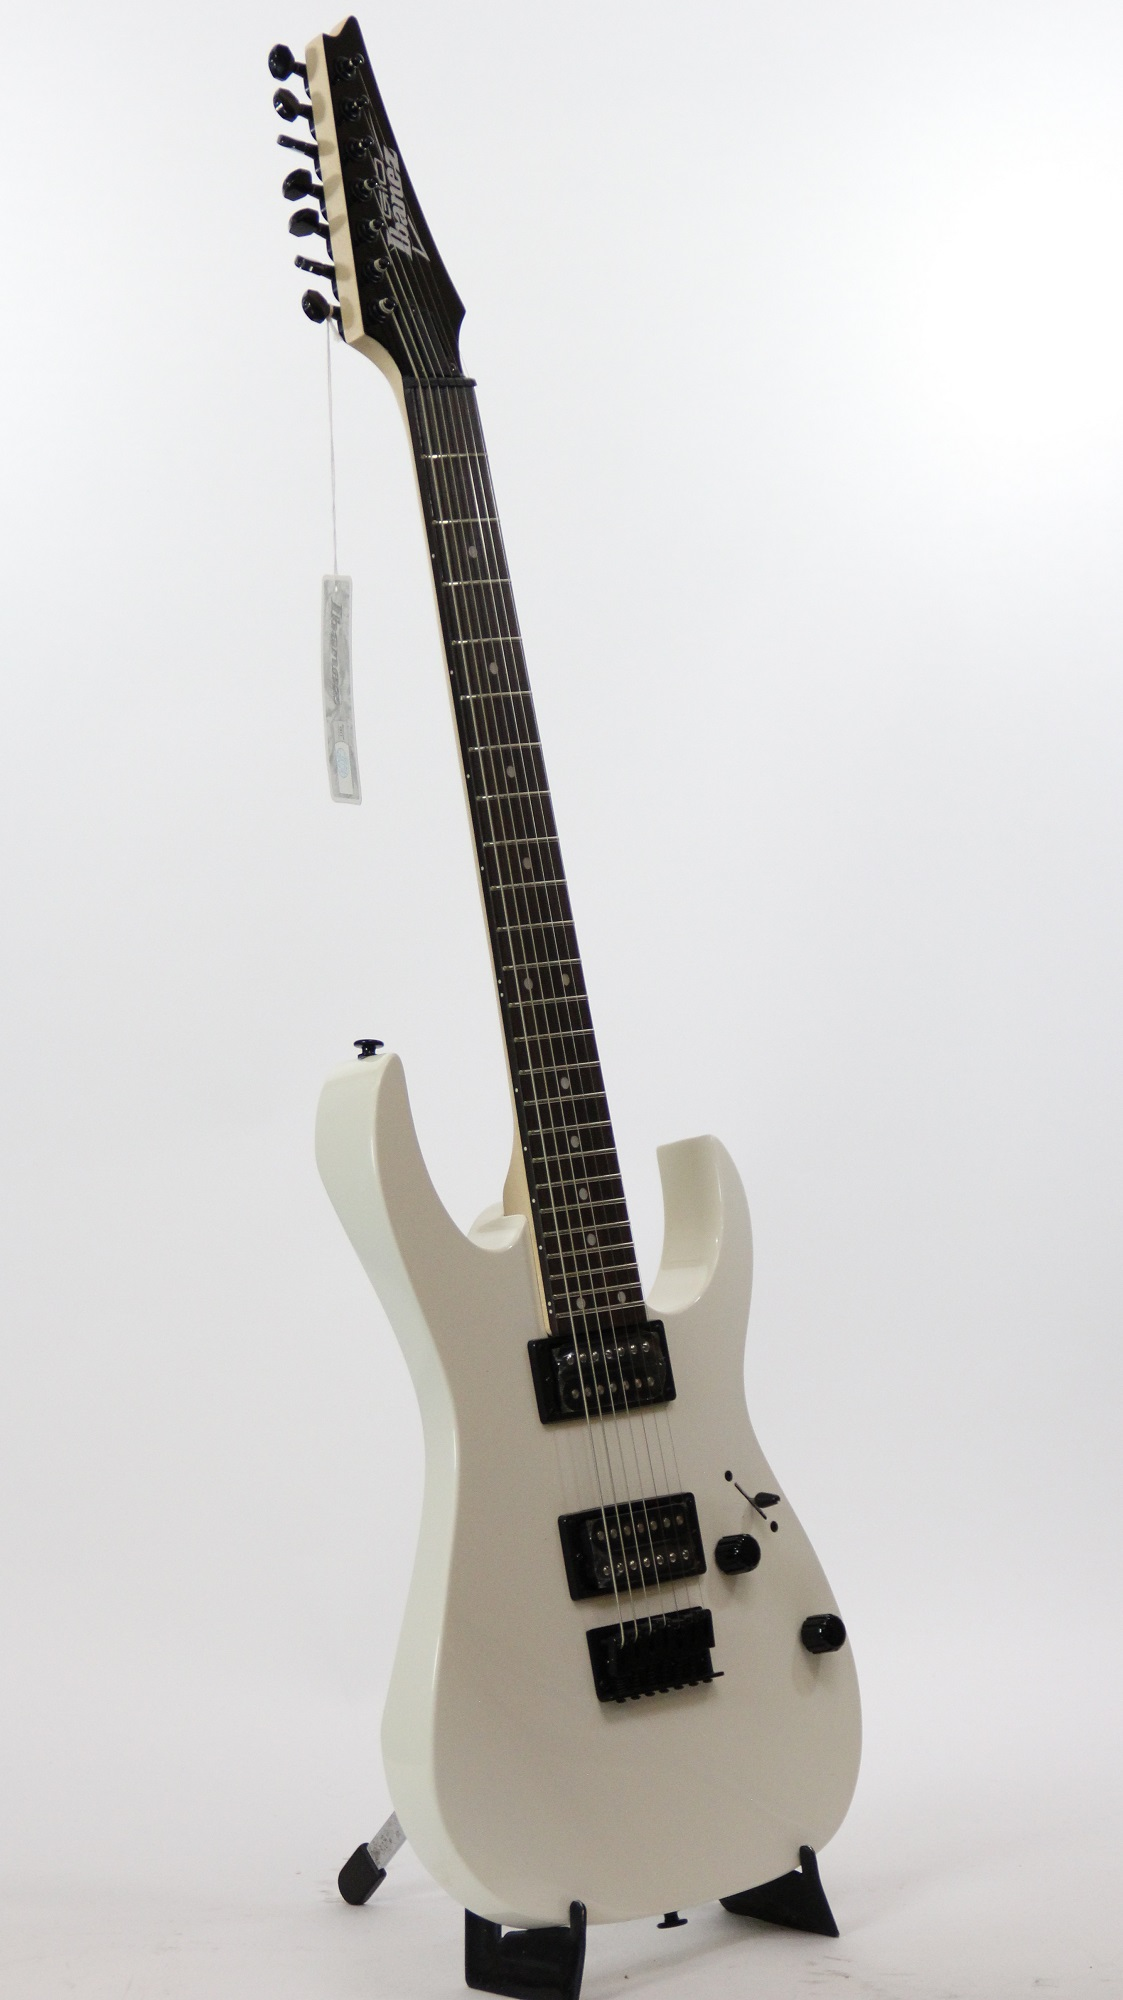 Ibanez Gio Grg Wh White 7 String Electric Guitar